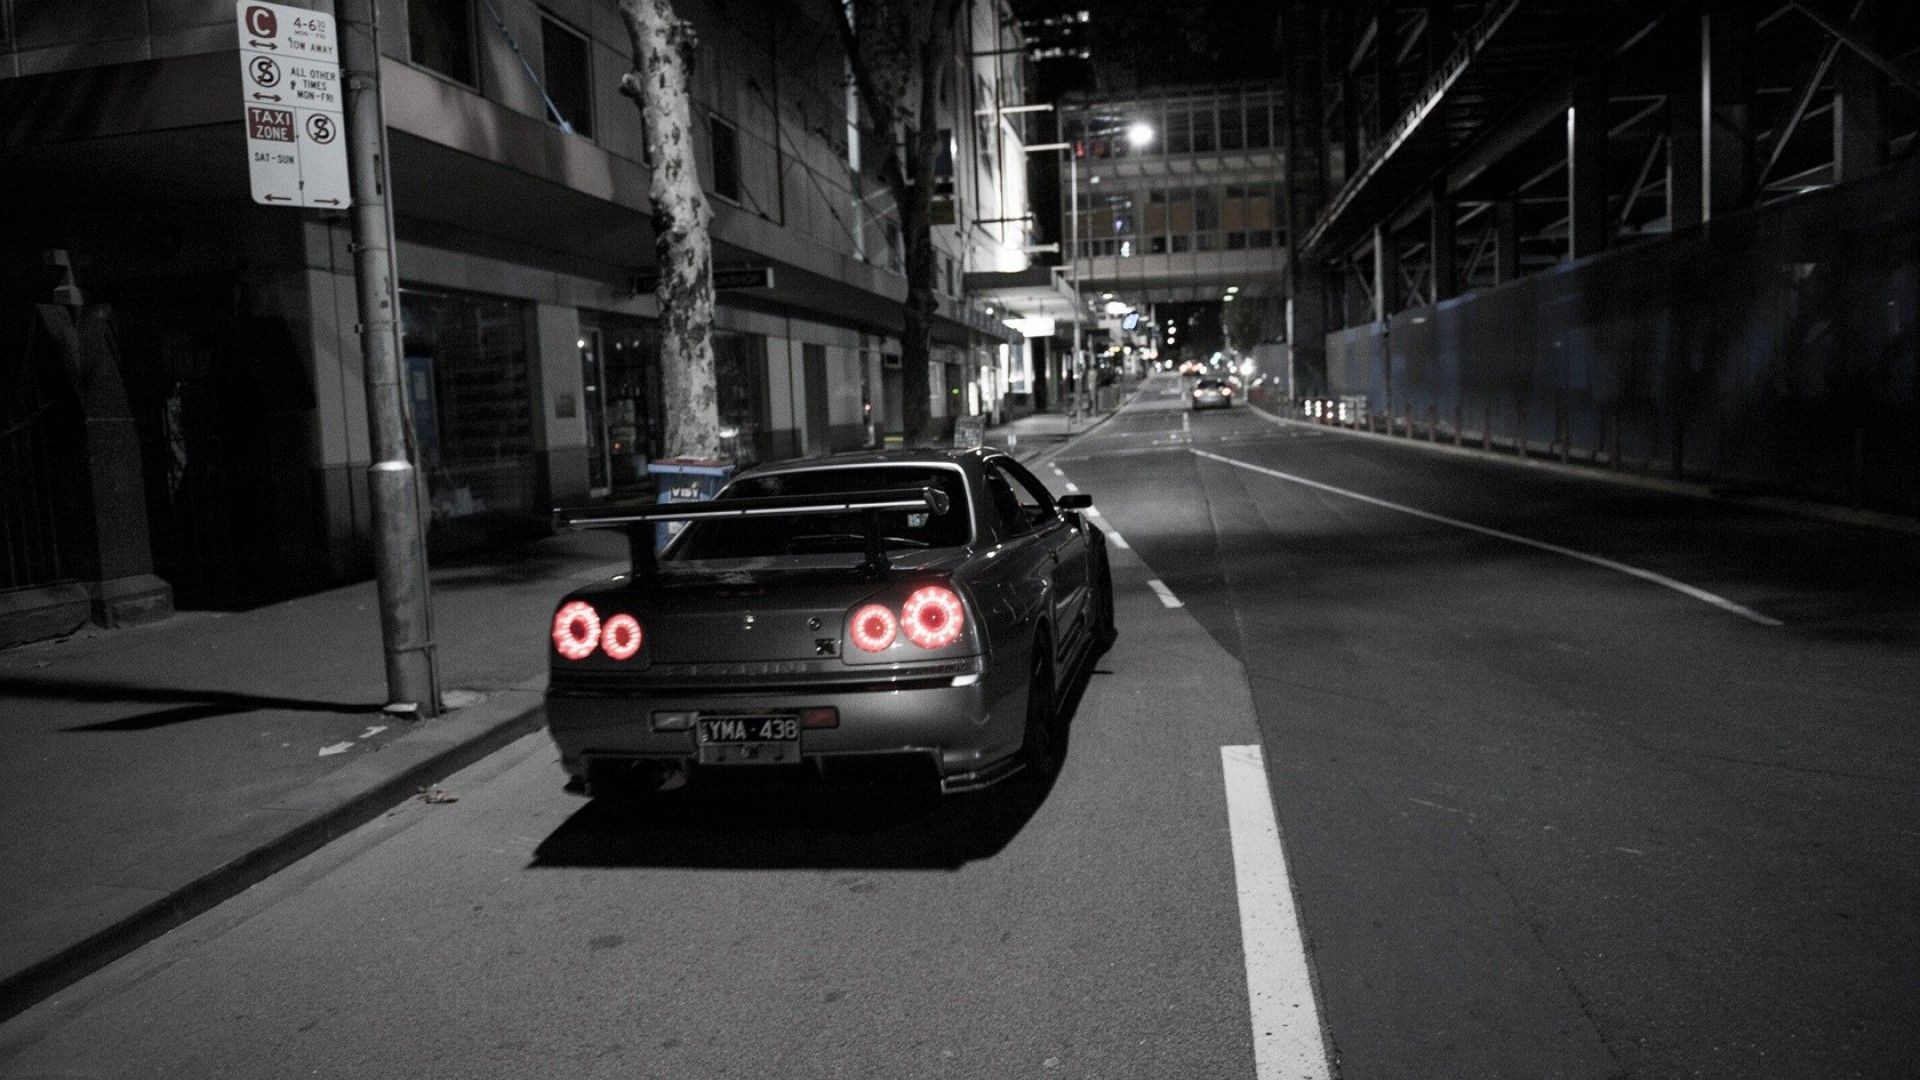 Skyline Gtr R34 Wallpaper Posted By Sarah Cunningham